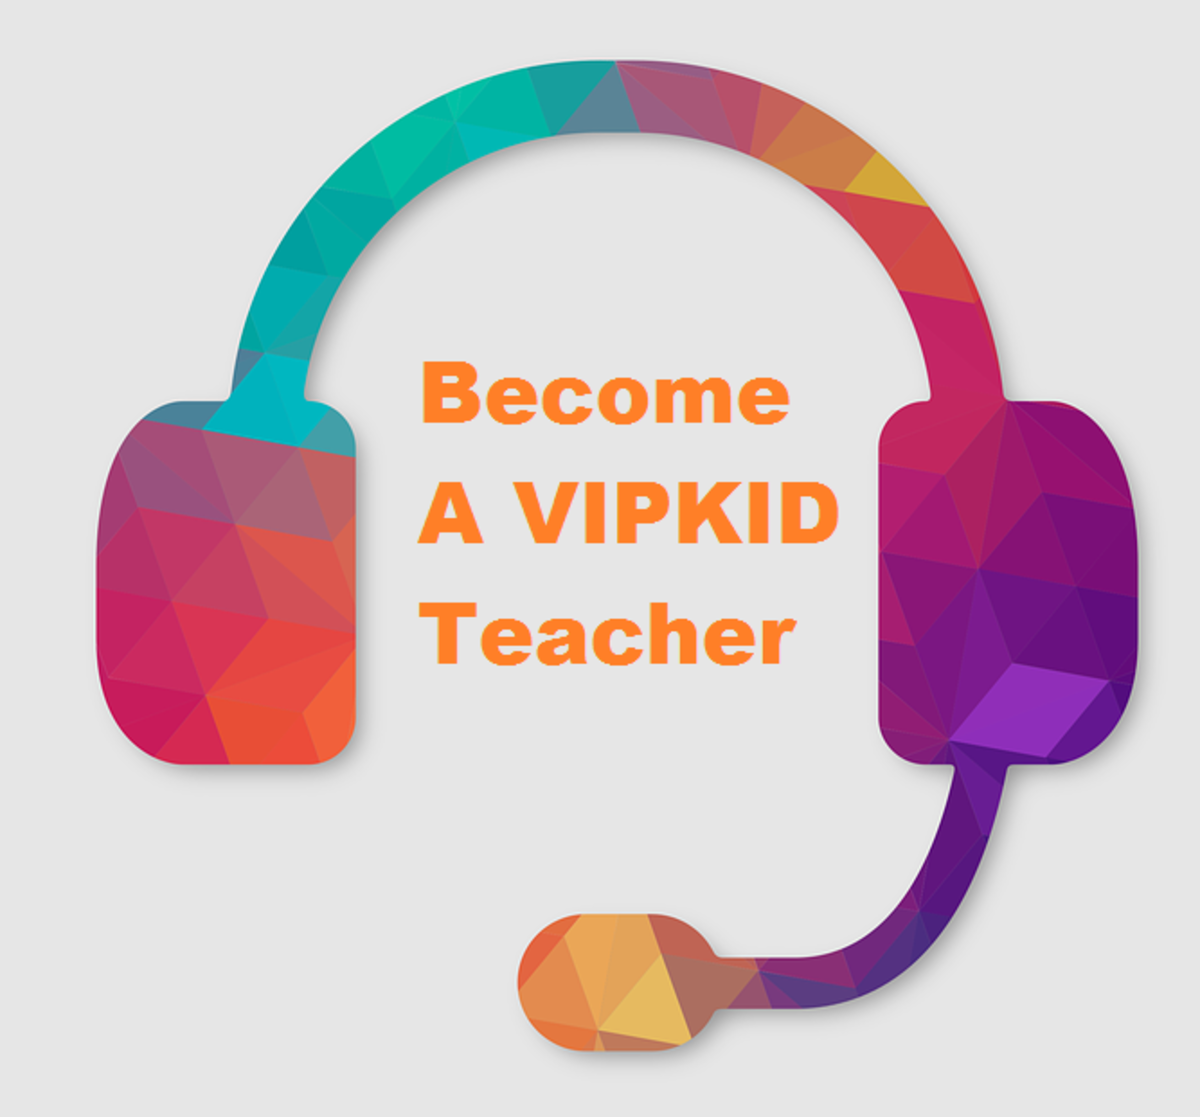 How to Work From Home as a Teacher Through VIPKID